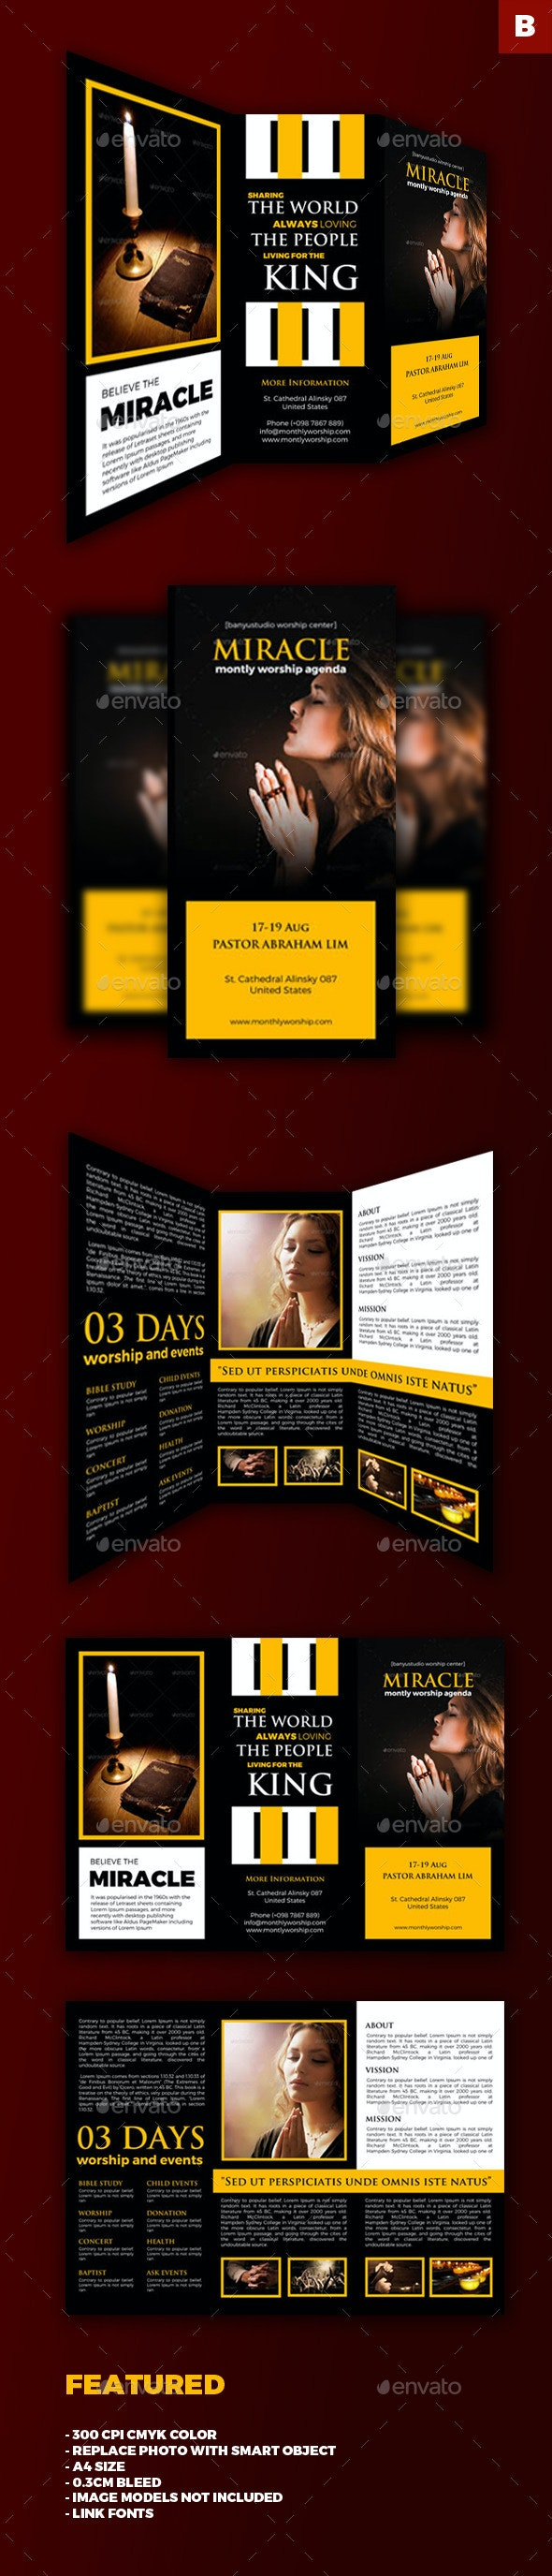 Church Trifold Brochures - Informational Brochures